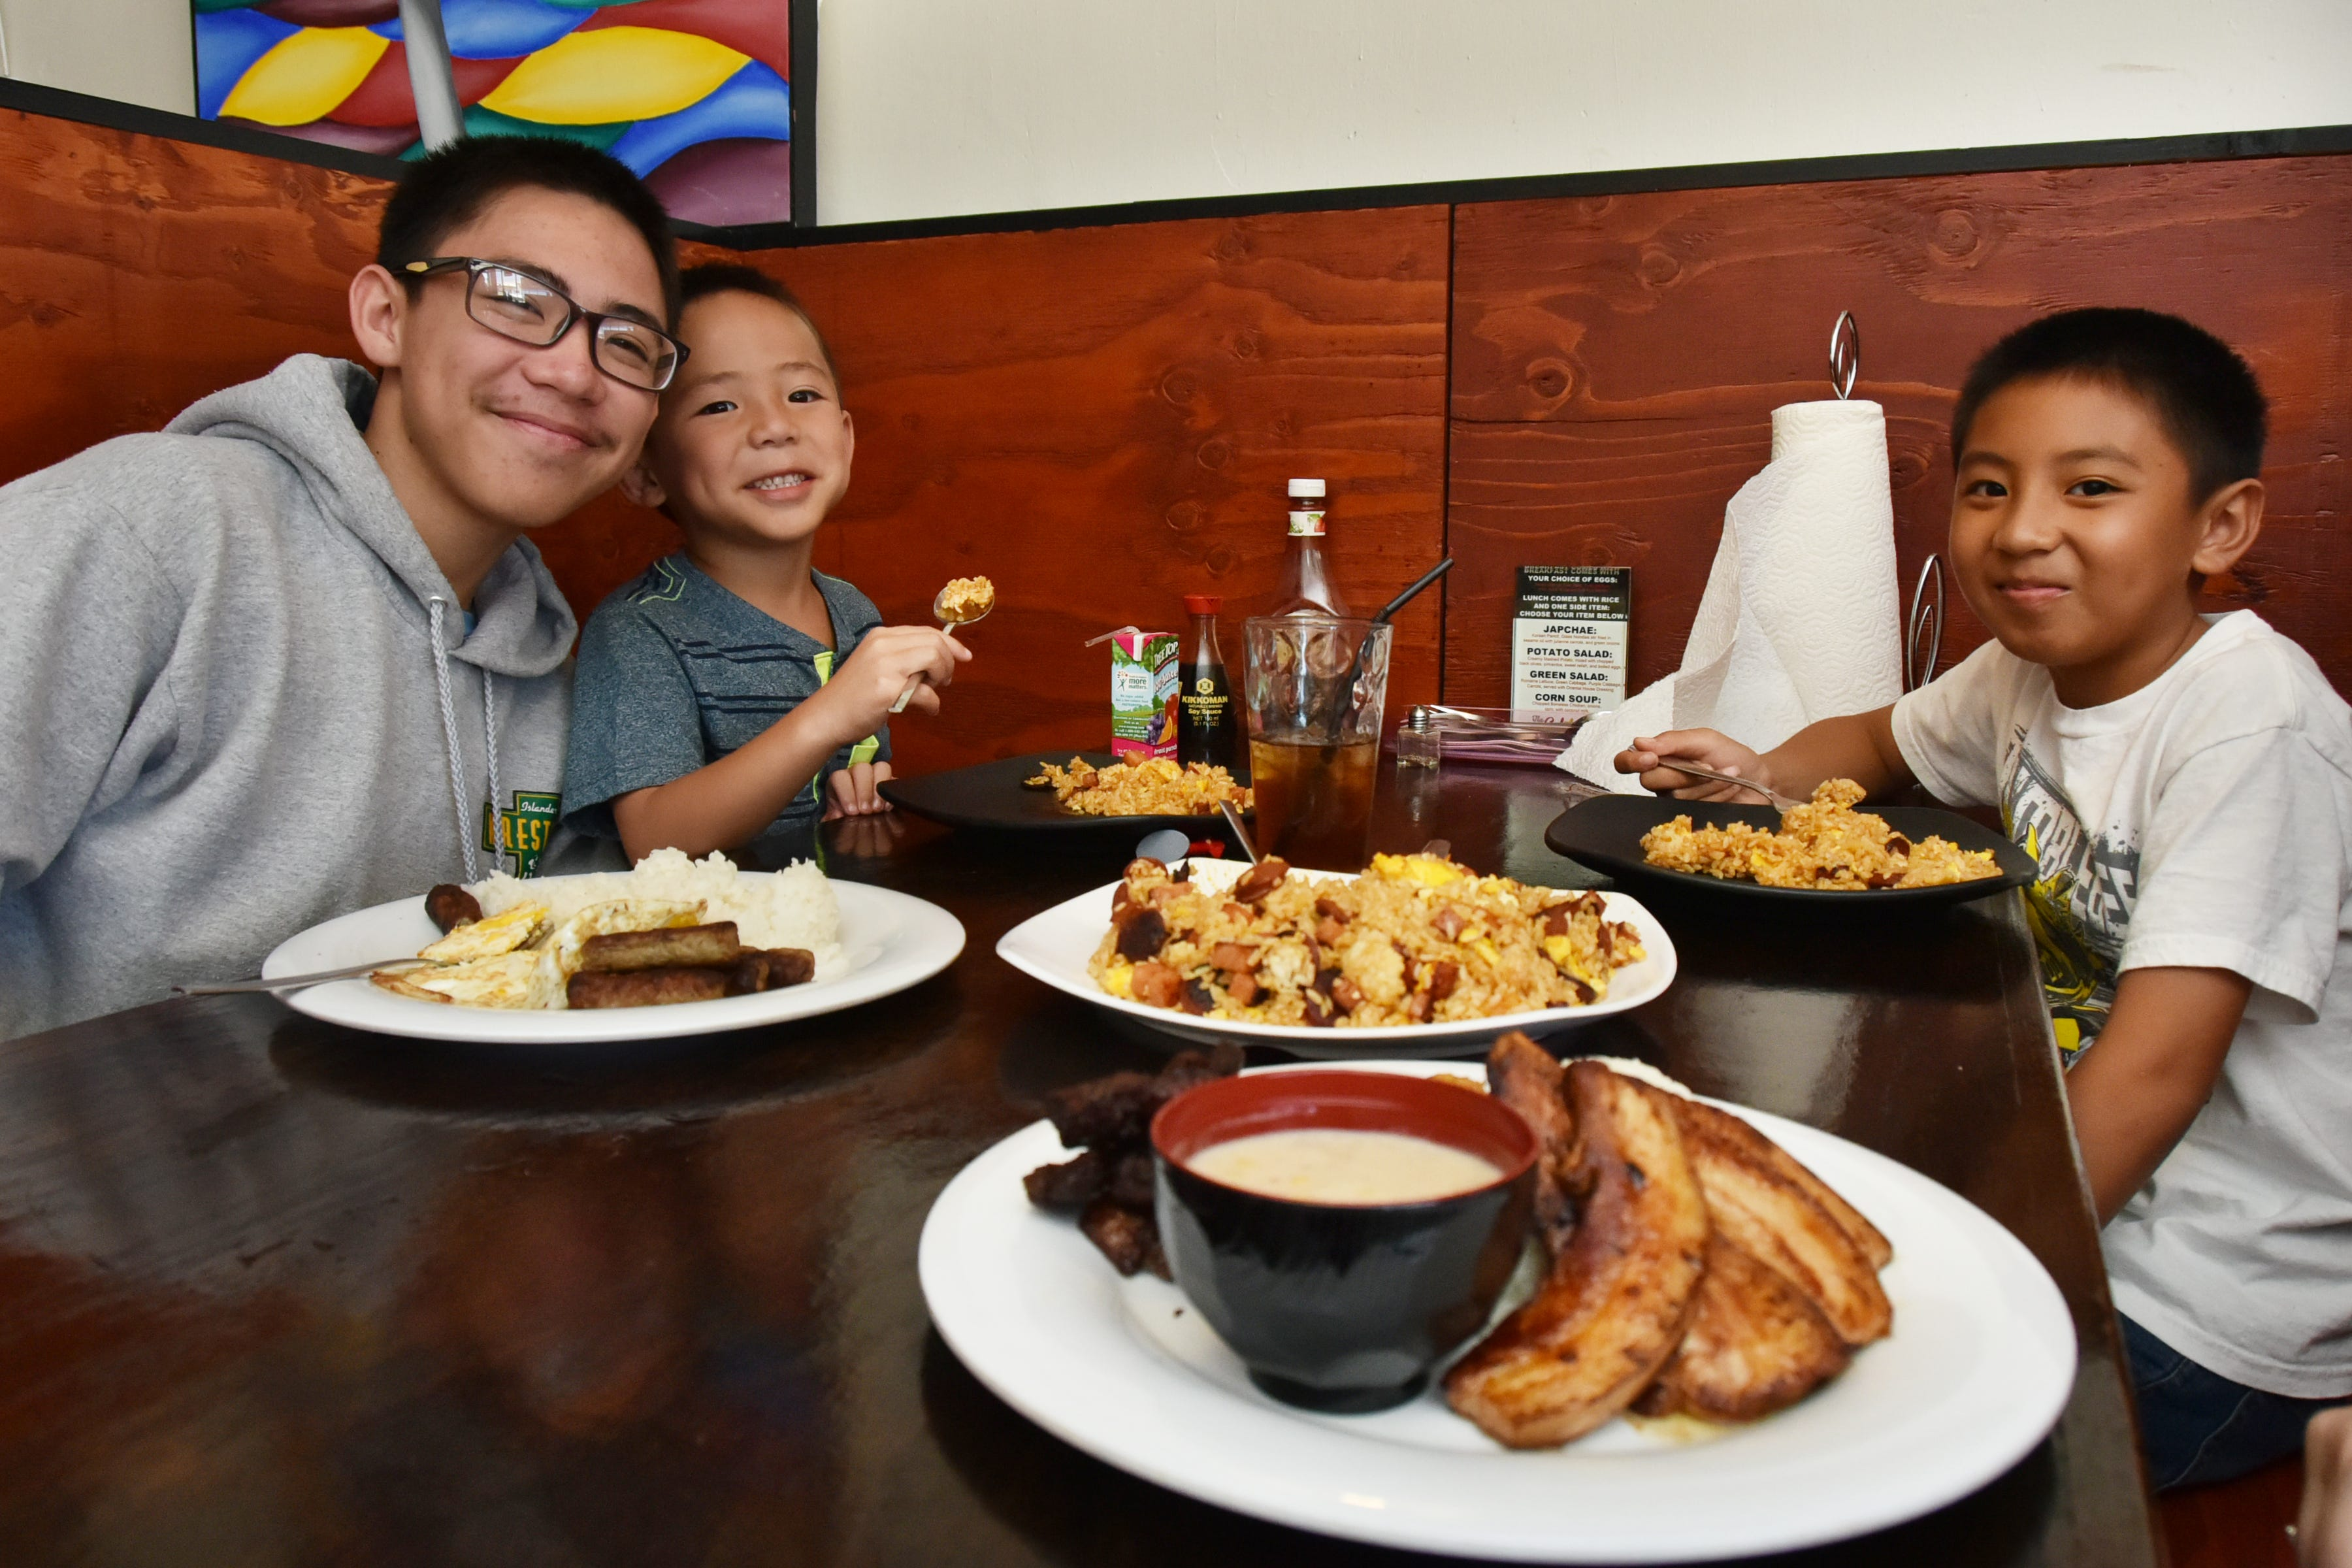 Kaleb, 16 (left); Roman, 5 (right); and Noah Sablan, 9 (opposite) enjoying their favorite dishes at The Cafeteria restaurant in Harmon in August 2015.